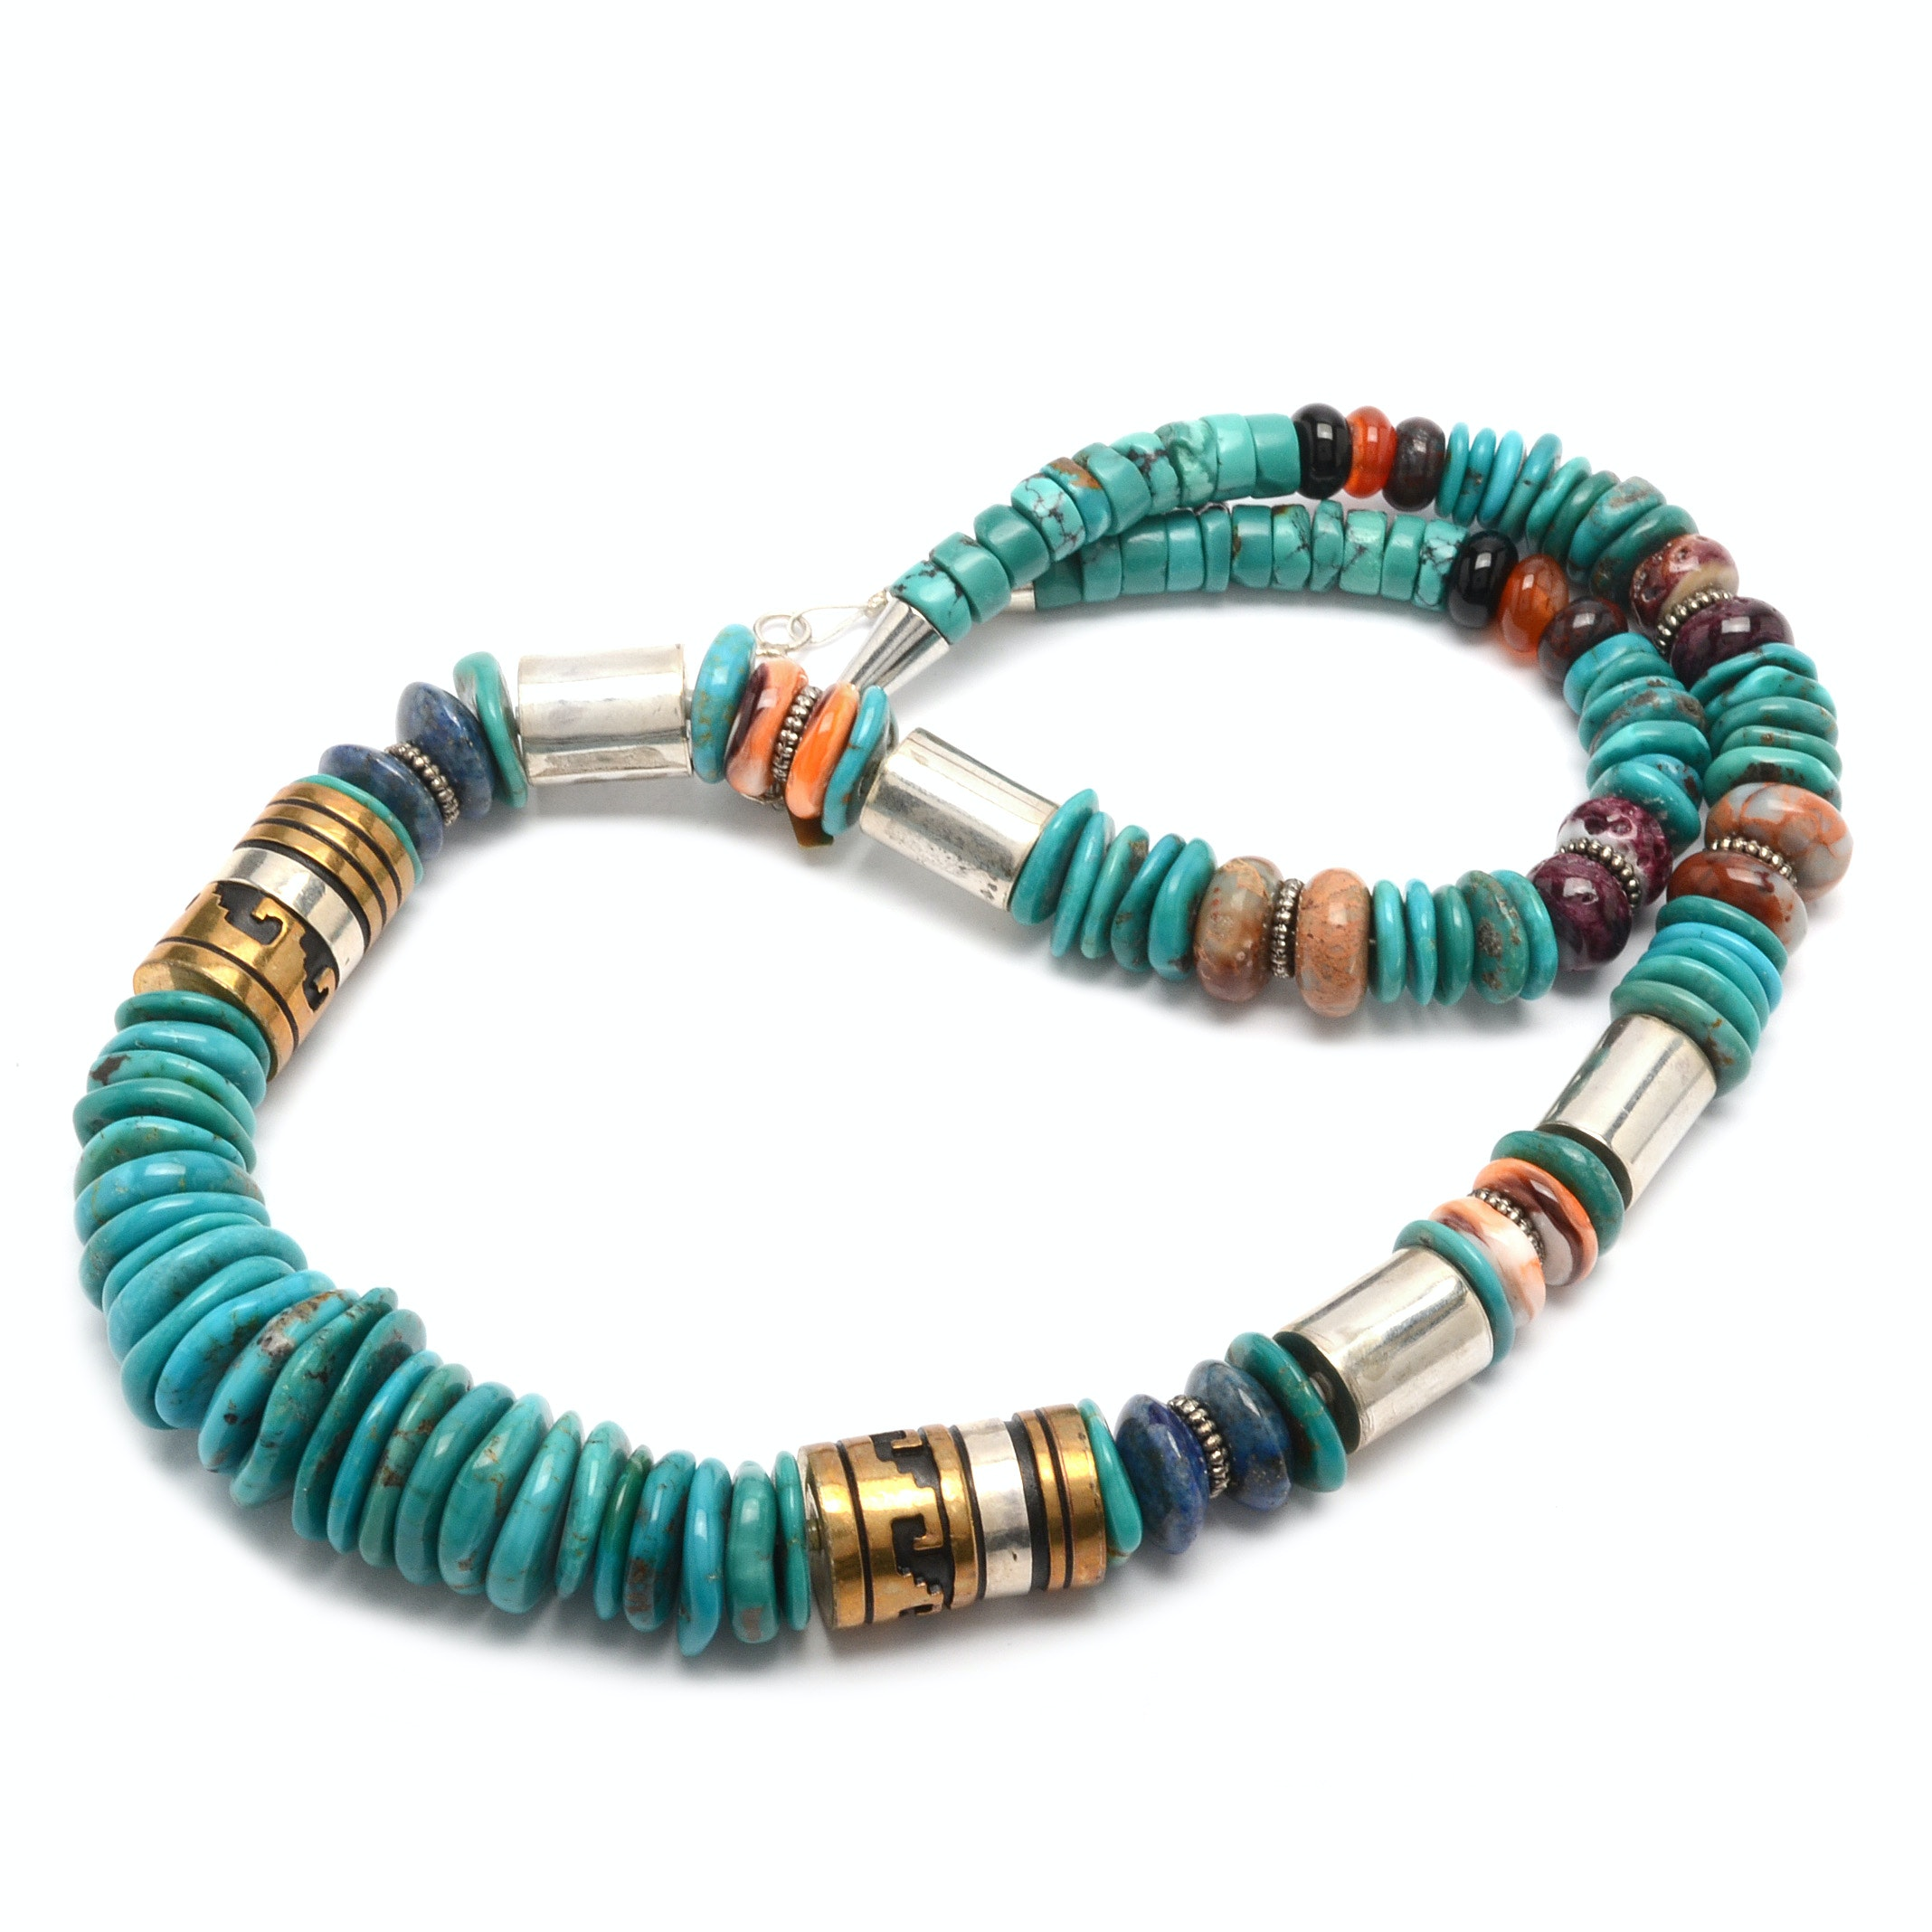 Tommy Singer Navajo Sterling Silver Turquoise, Lapis and Shell Necklace